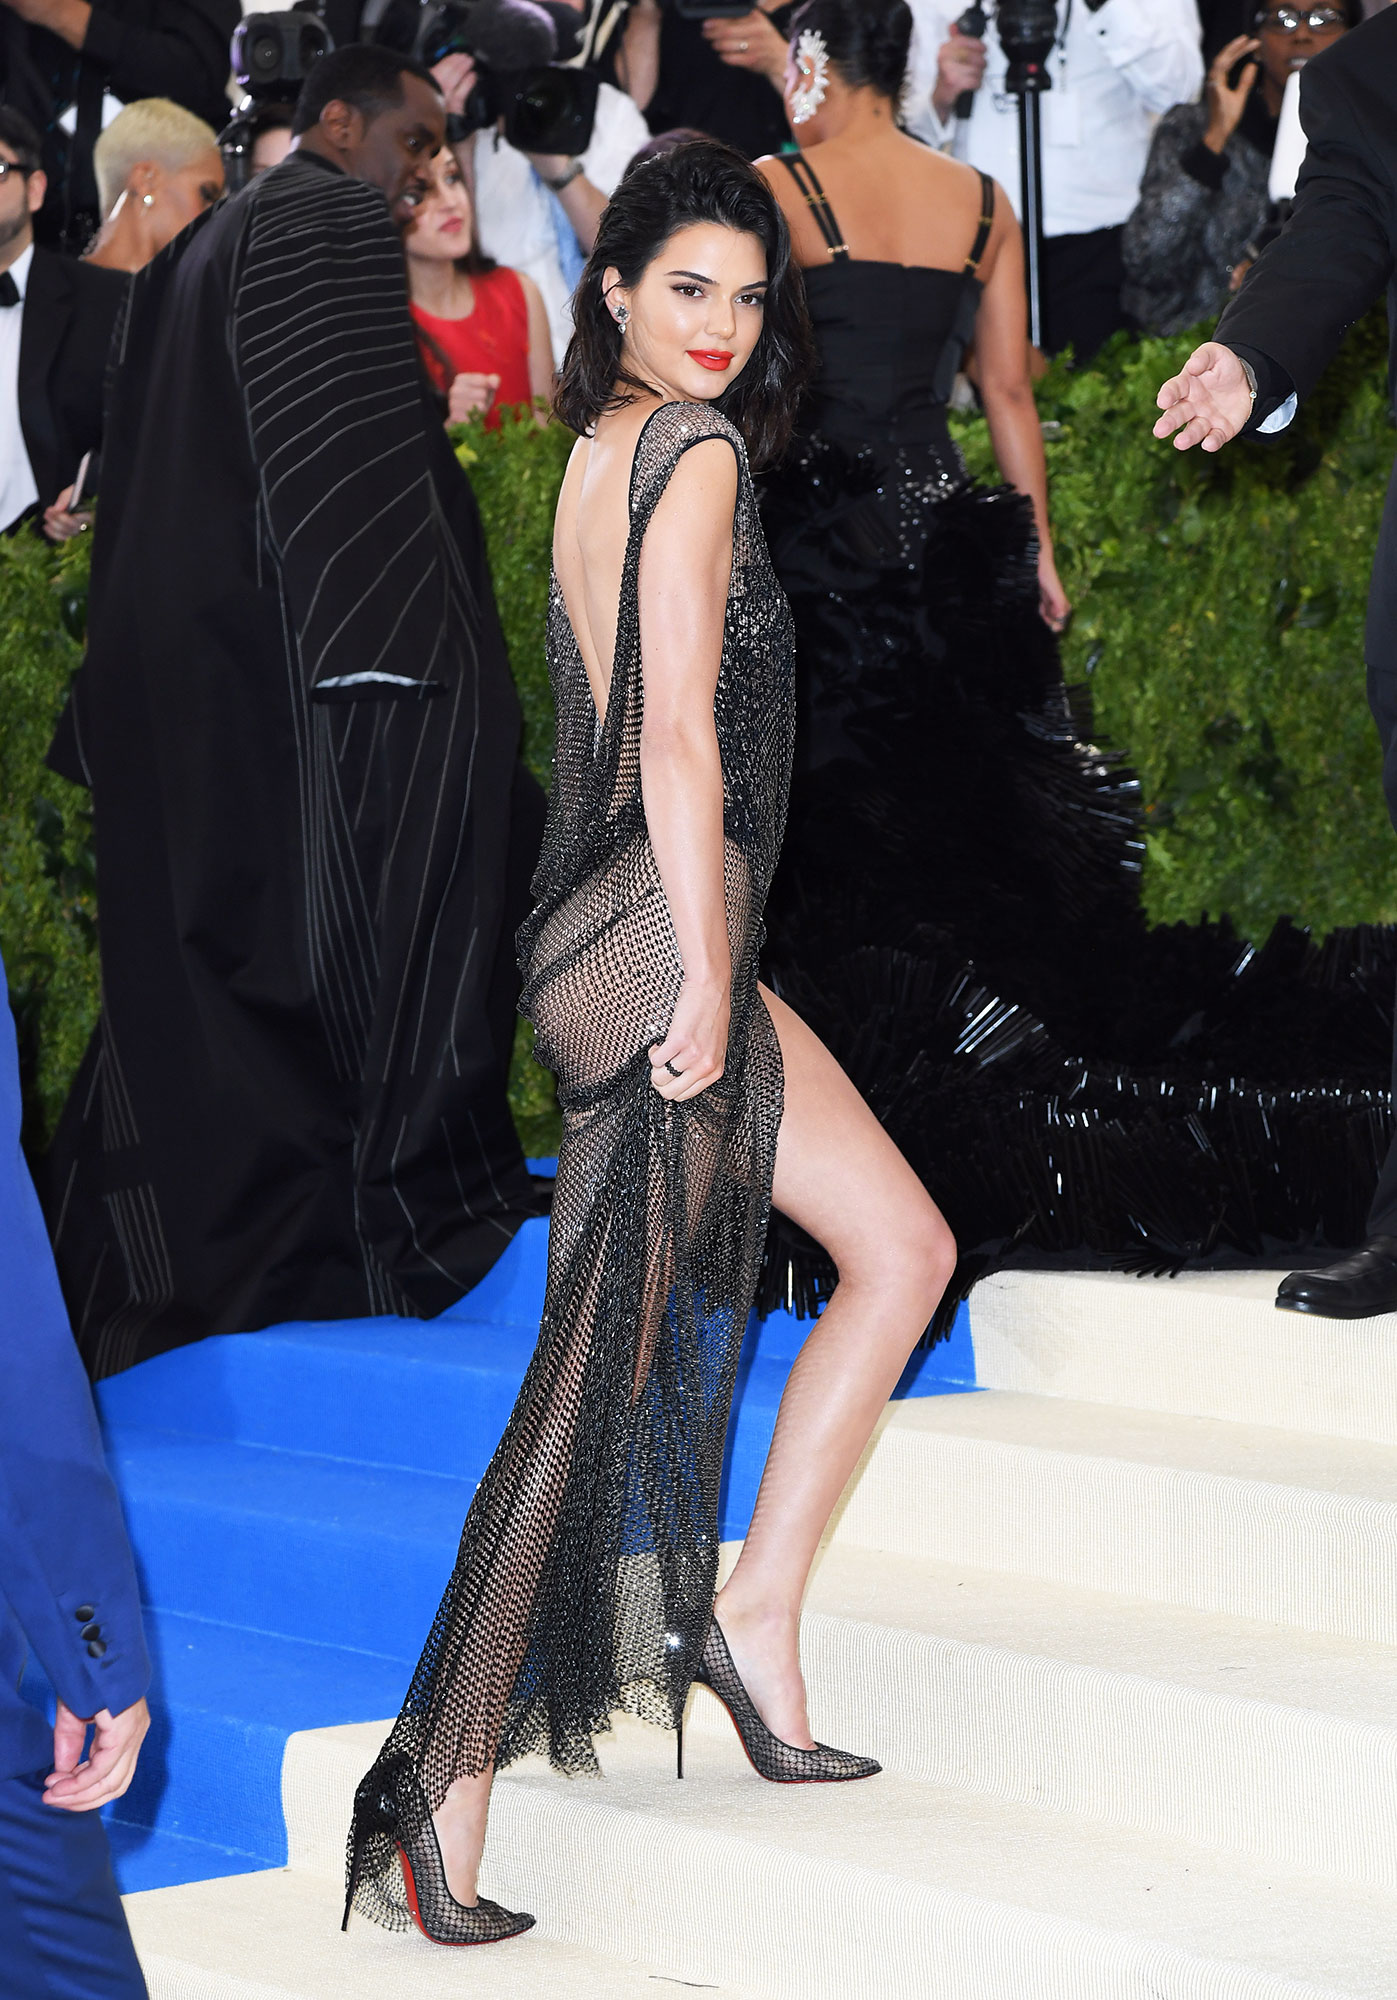 Kendall Jenner The Wild Met Gala Red Carpet Fashion Looks We Can't Stop Thinking About - In La Perla.